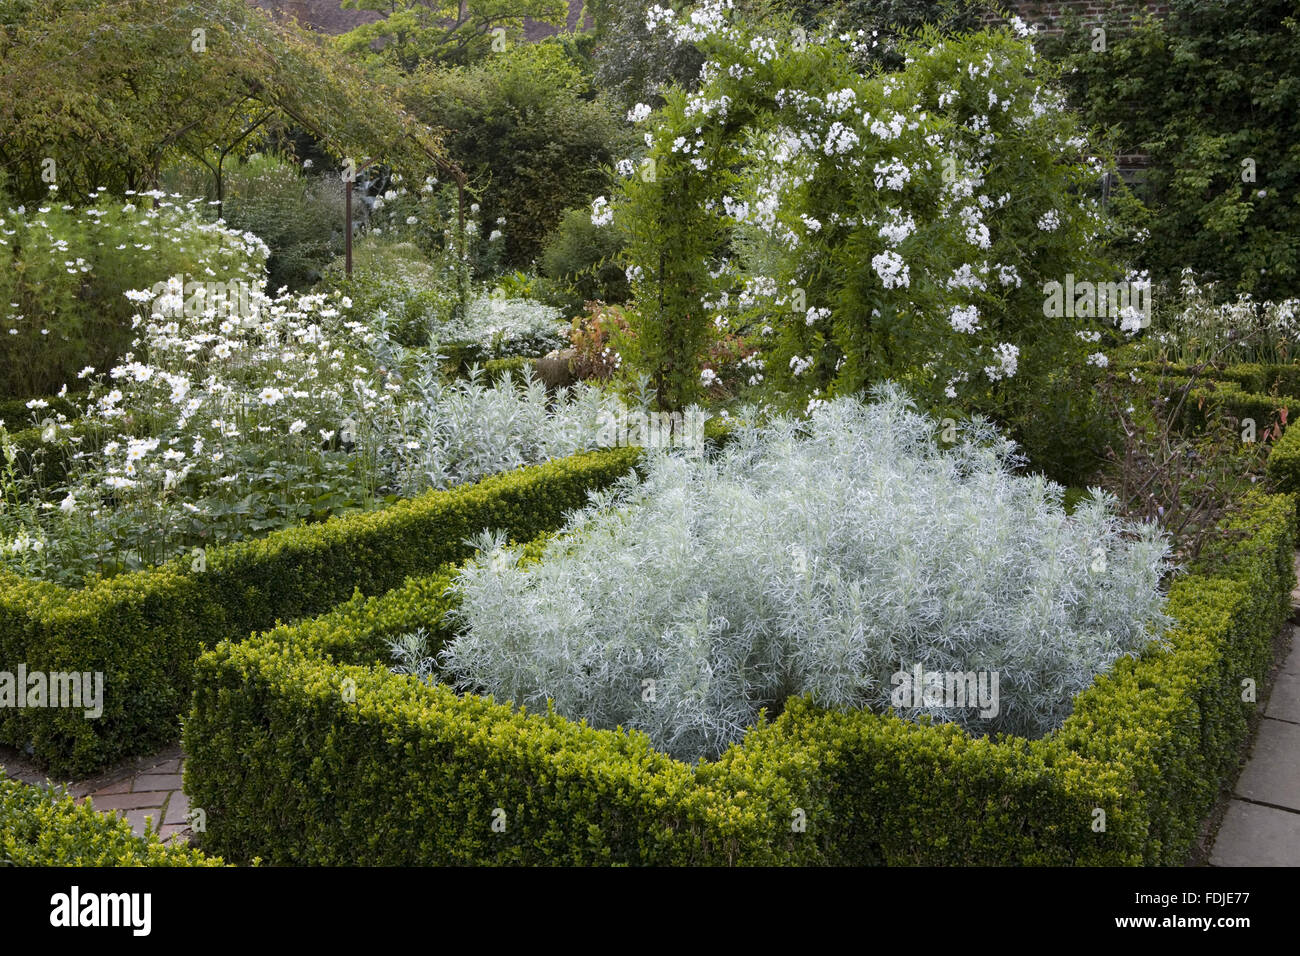 solanum jasminoides 39 album 39 ber dem bogen in der wei e garten sissinghurst castle garden in. Black Bedroom Furniture Sets. Home Design Ideas